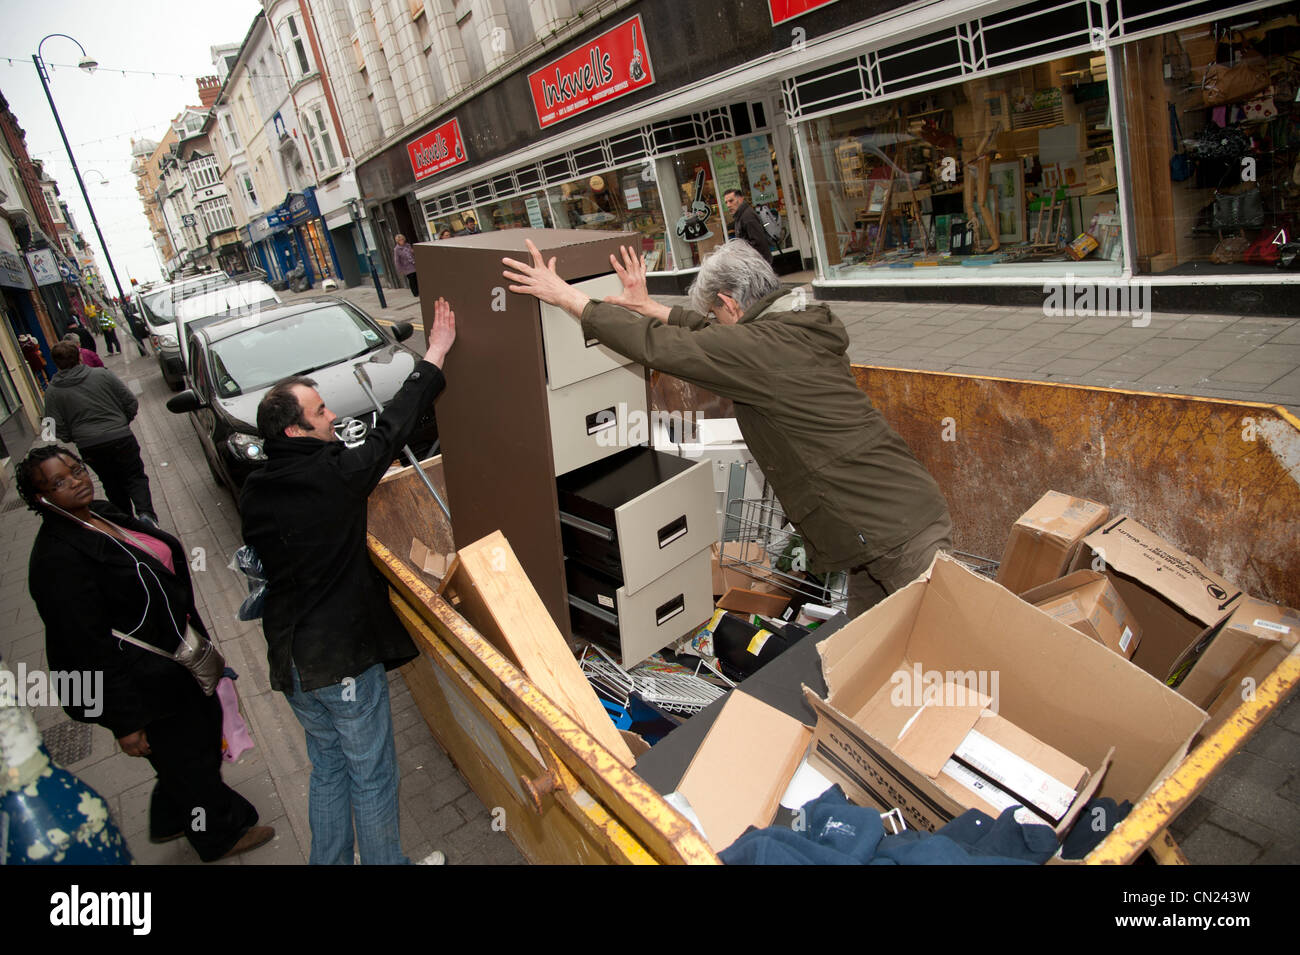 Skip raiding: People scavanging in a skip in the street for items thrown out by a shop, UK - Stock Image